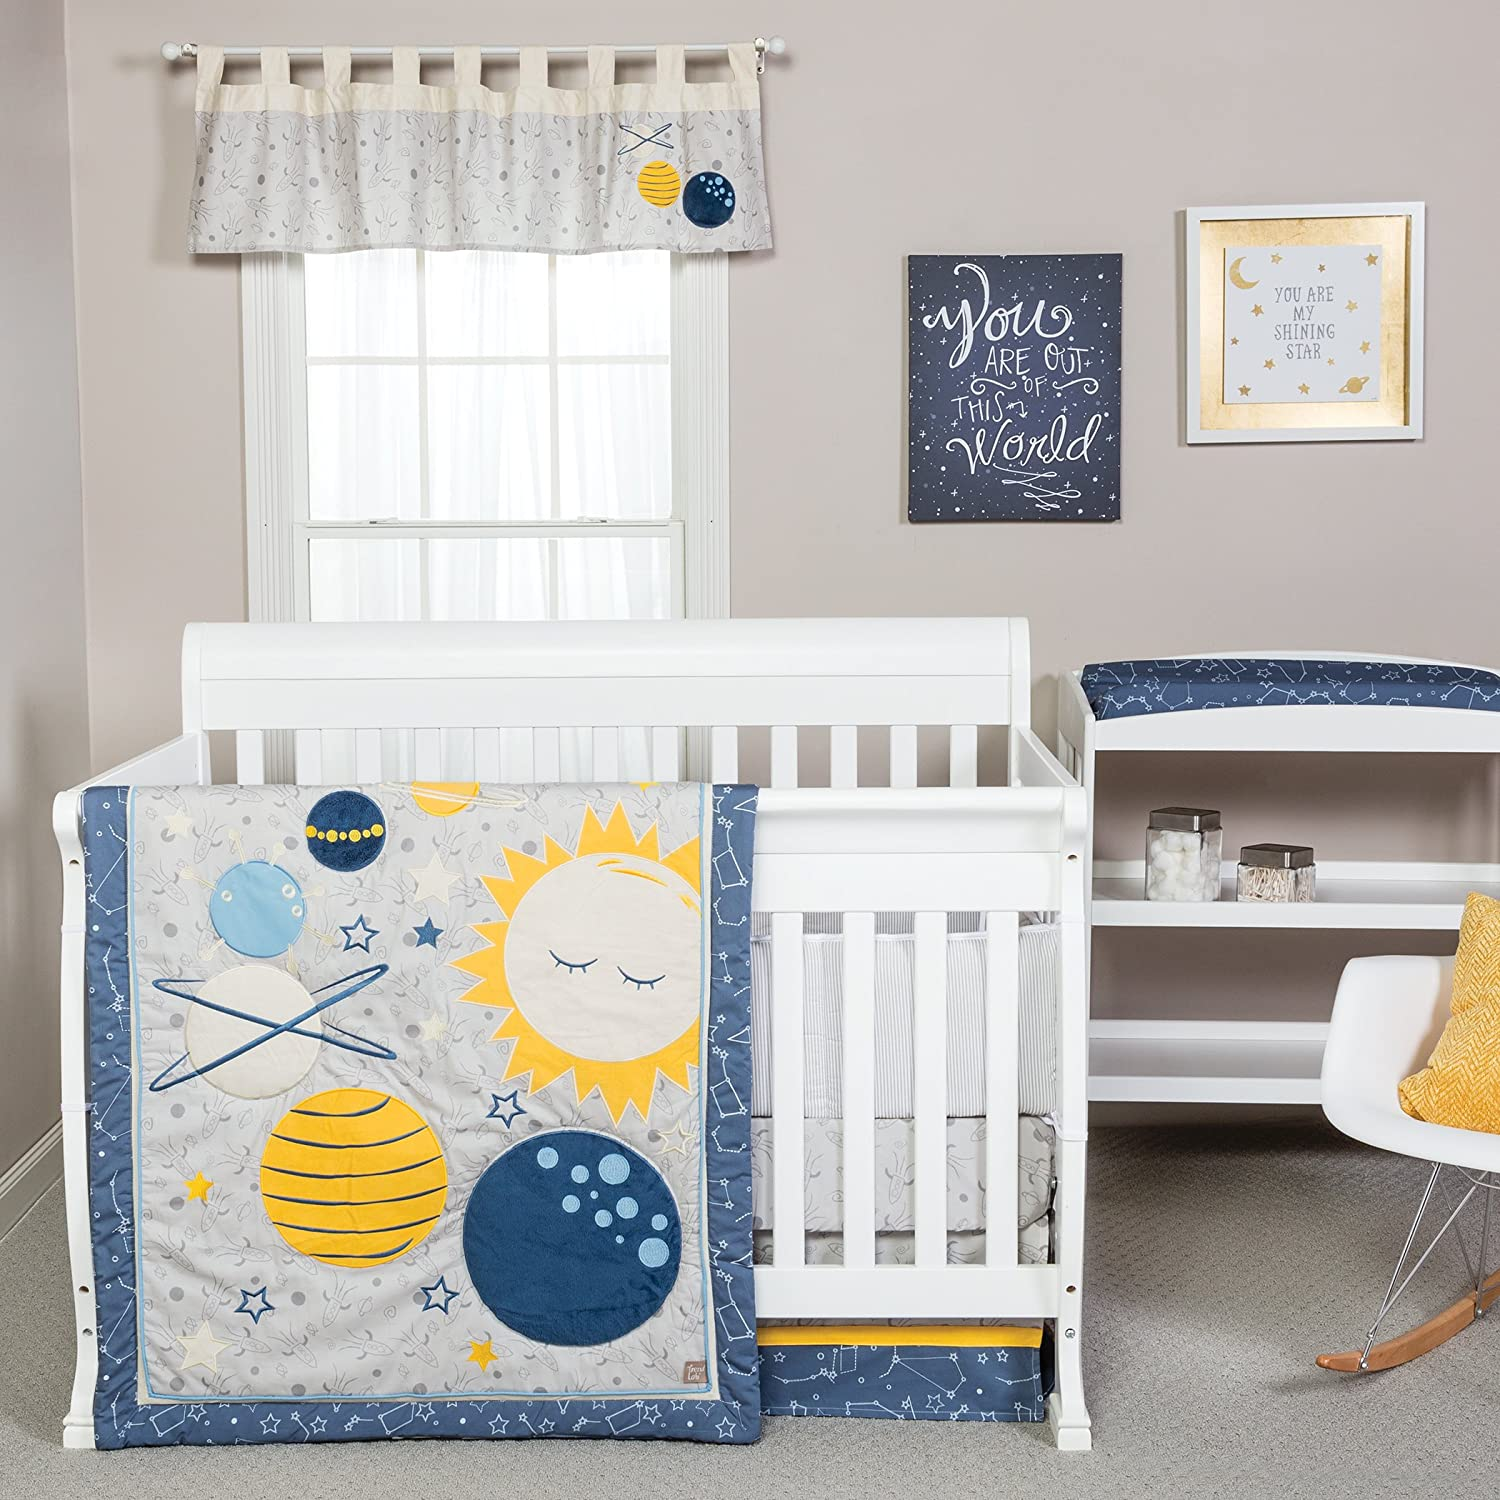 navy bedroom and charming site chevron miranpark bedding light cribs deer green grey sheet nursery crib skirt gray bluey blue